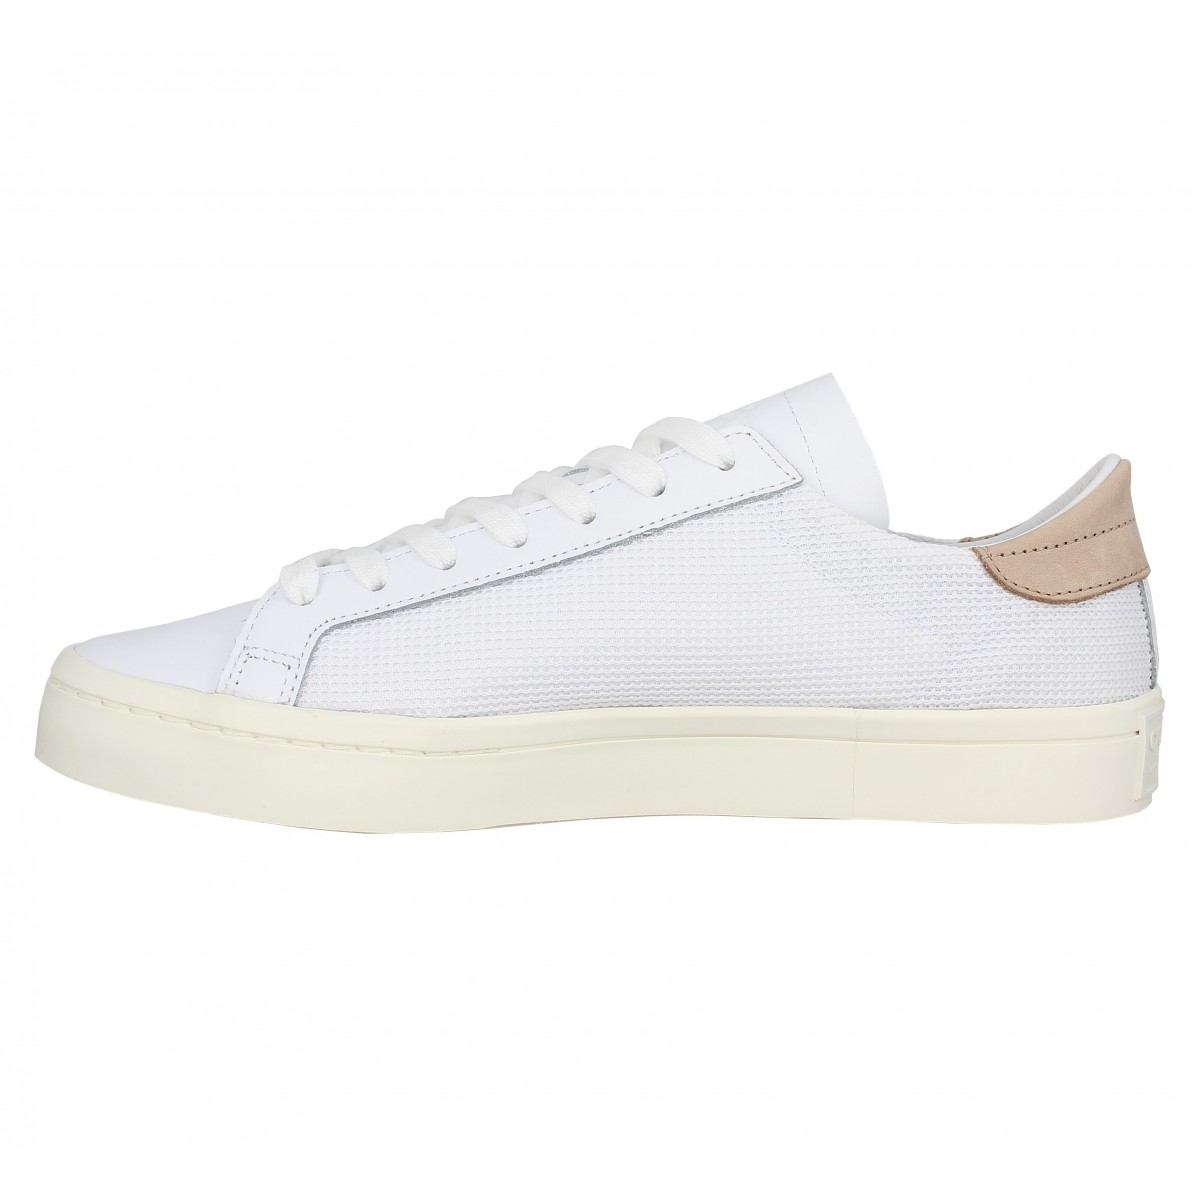 69085a767a5d9 Adidas court vantage toile homme blanc homme | Fanny chaussures